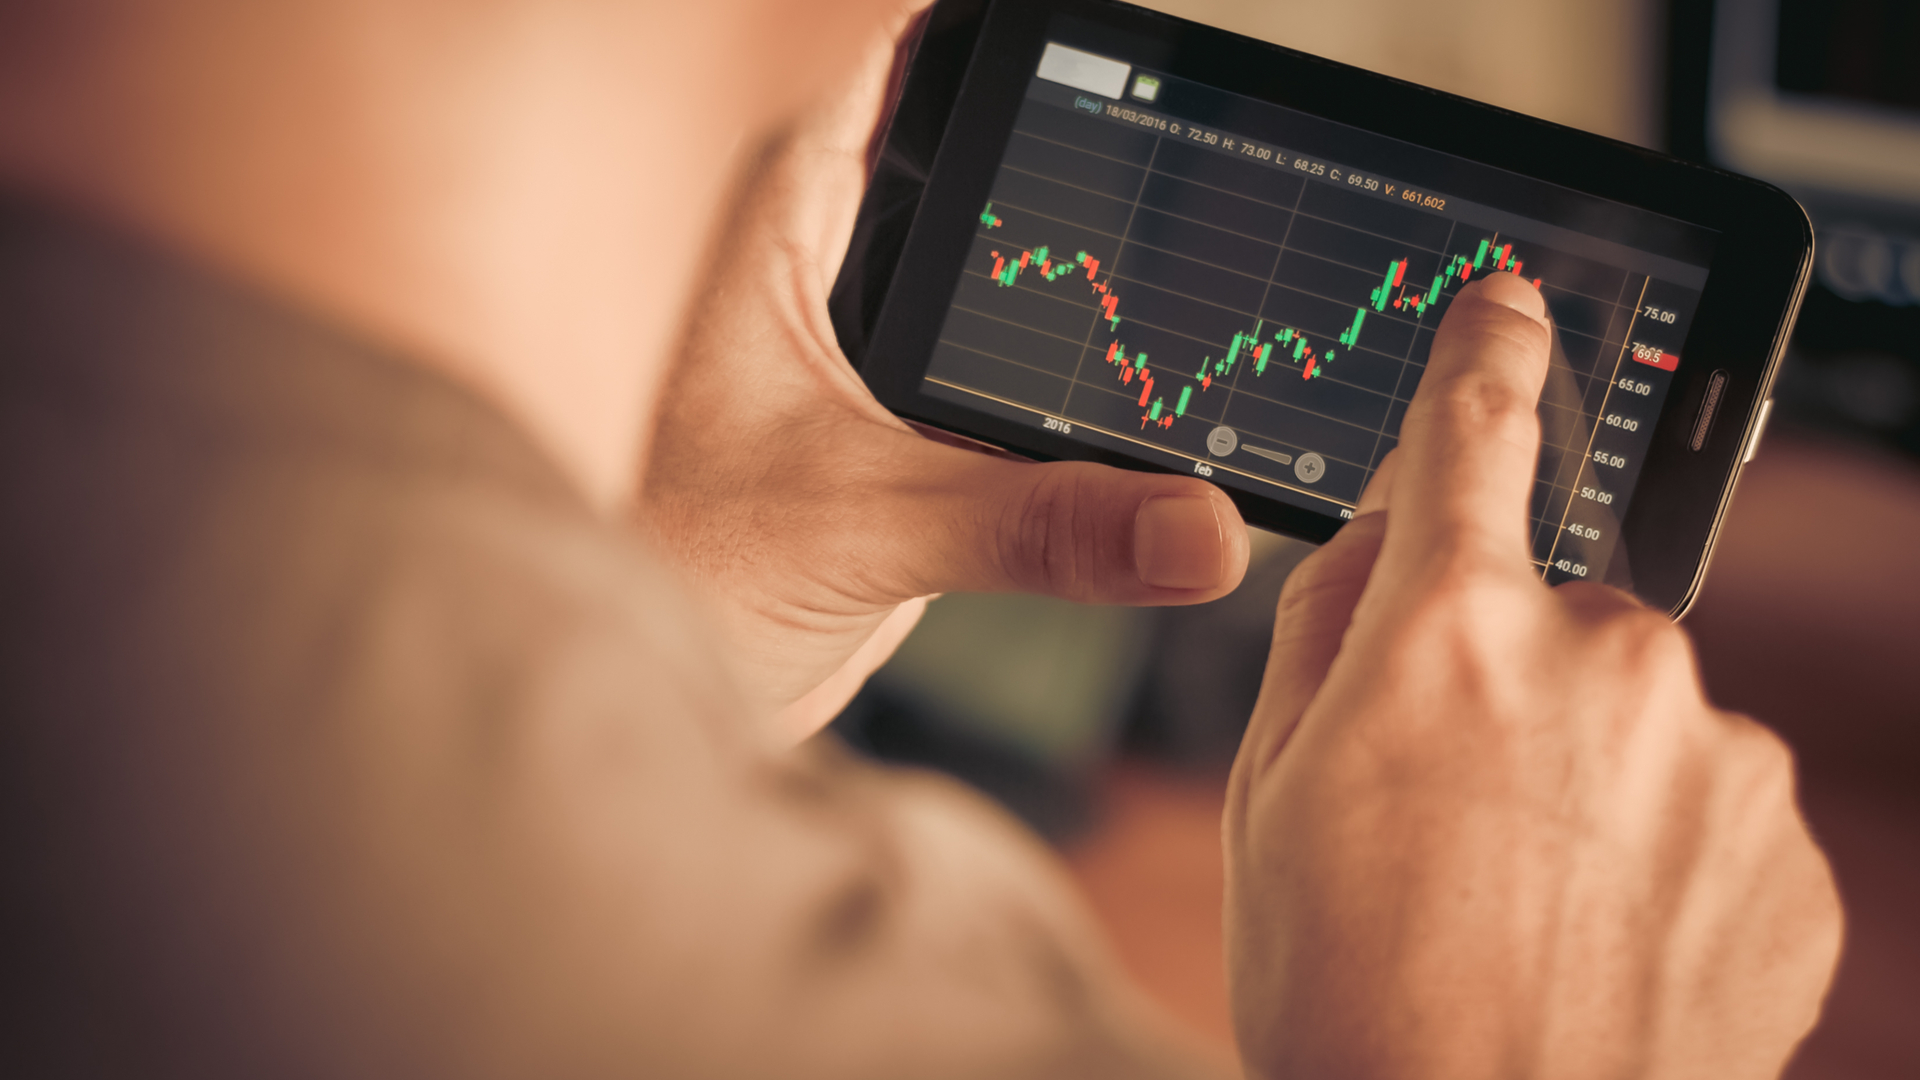 Gemini hightens security for it's mobile traders